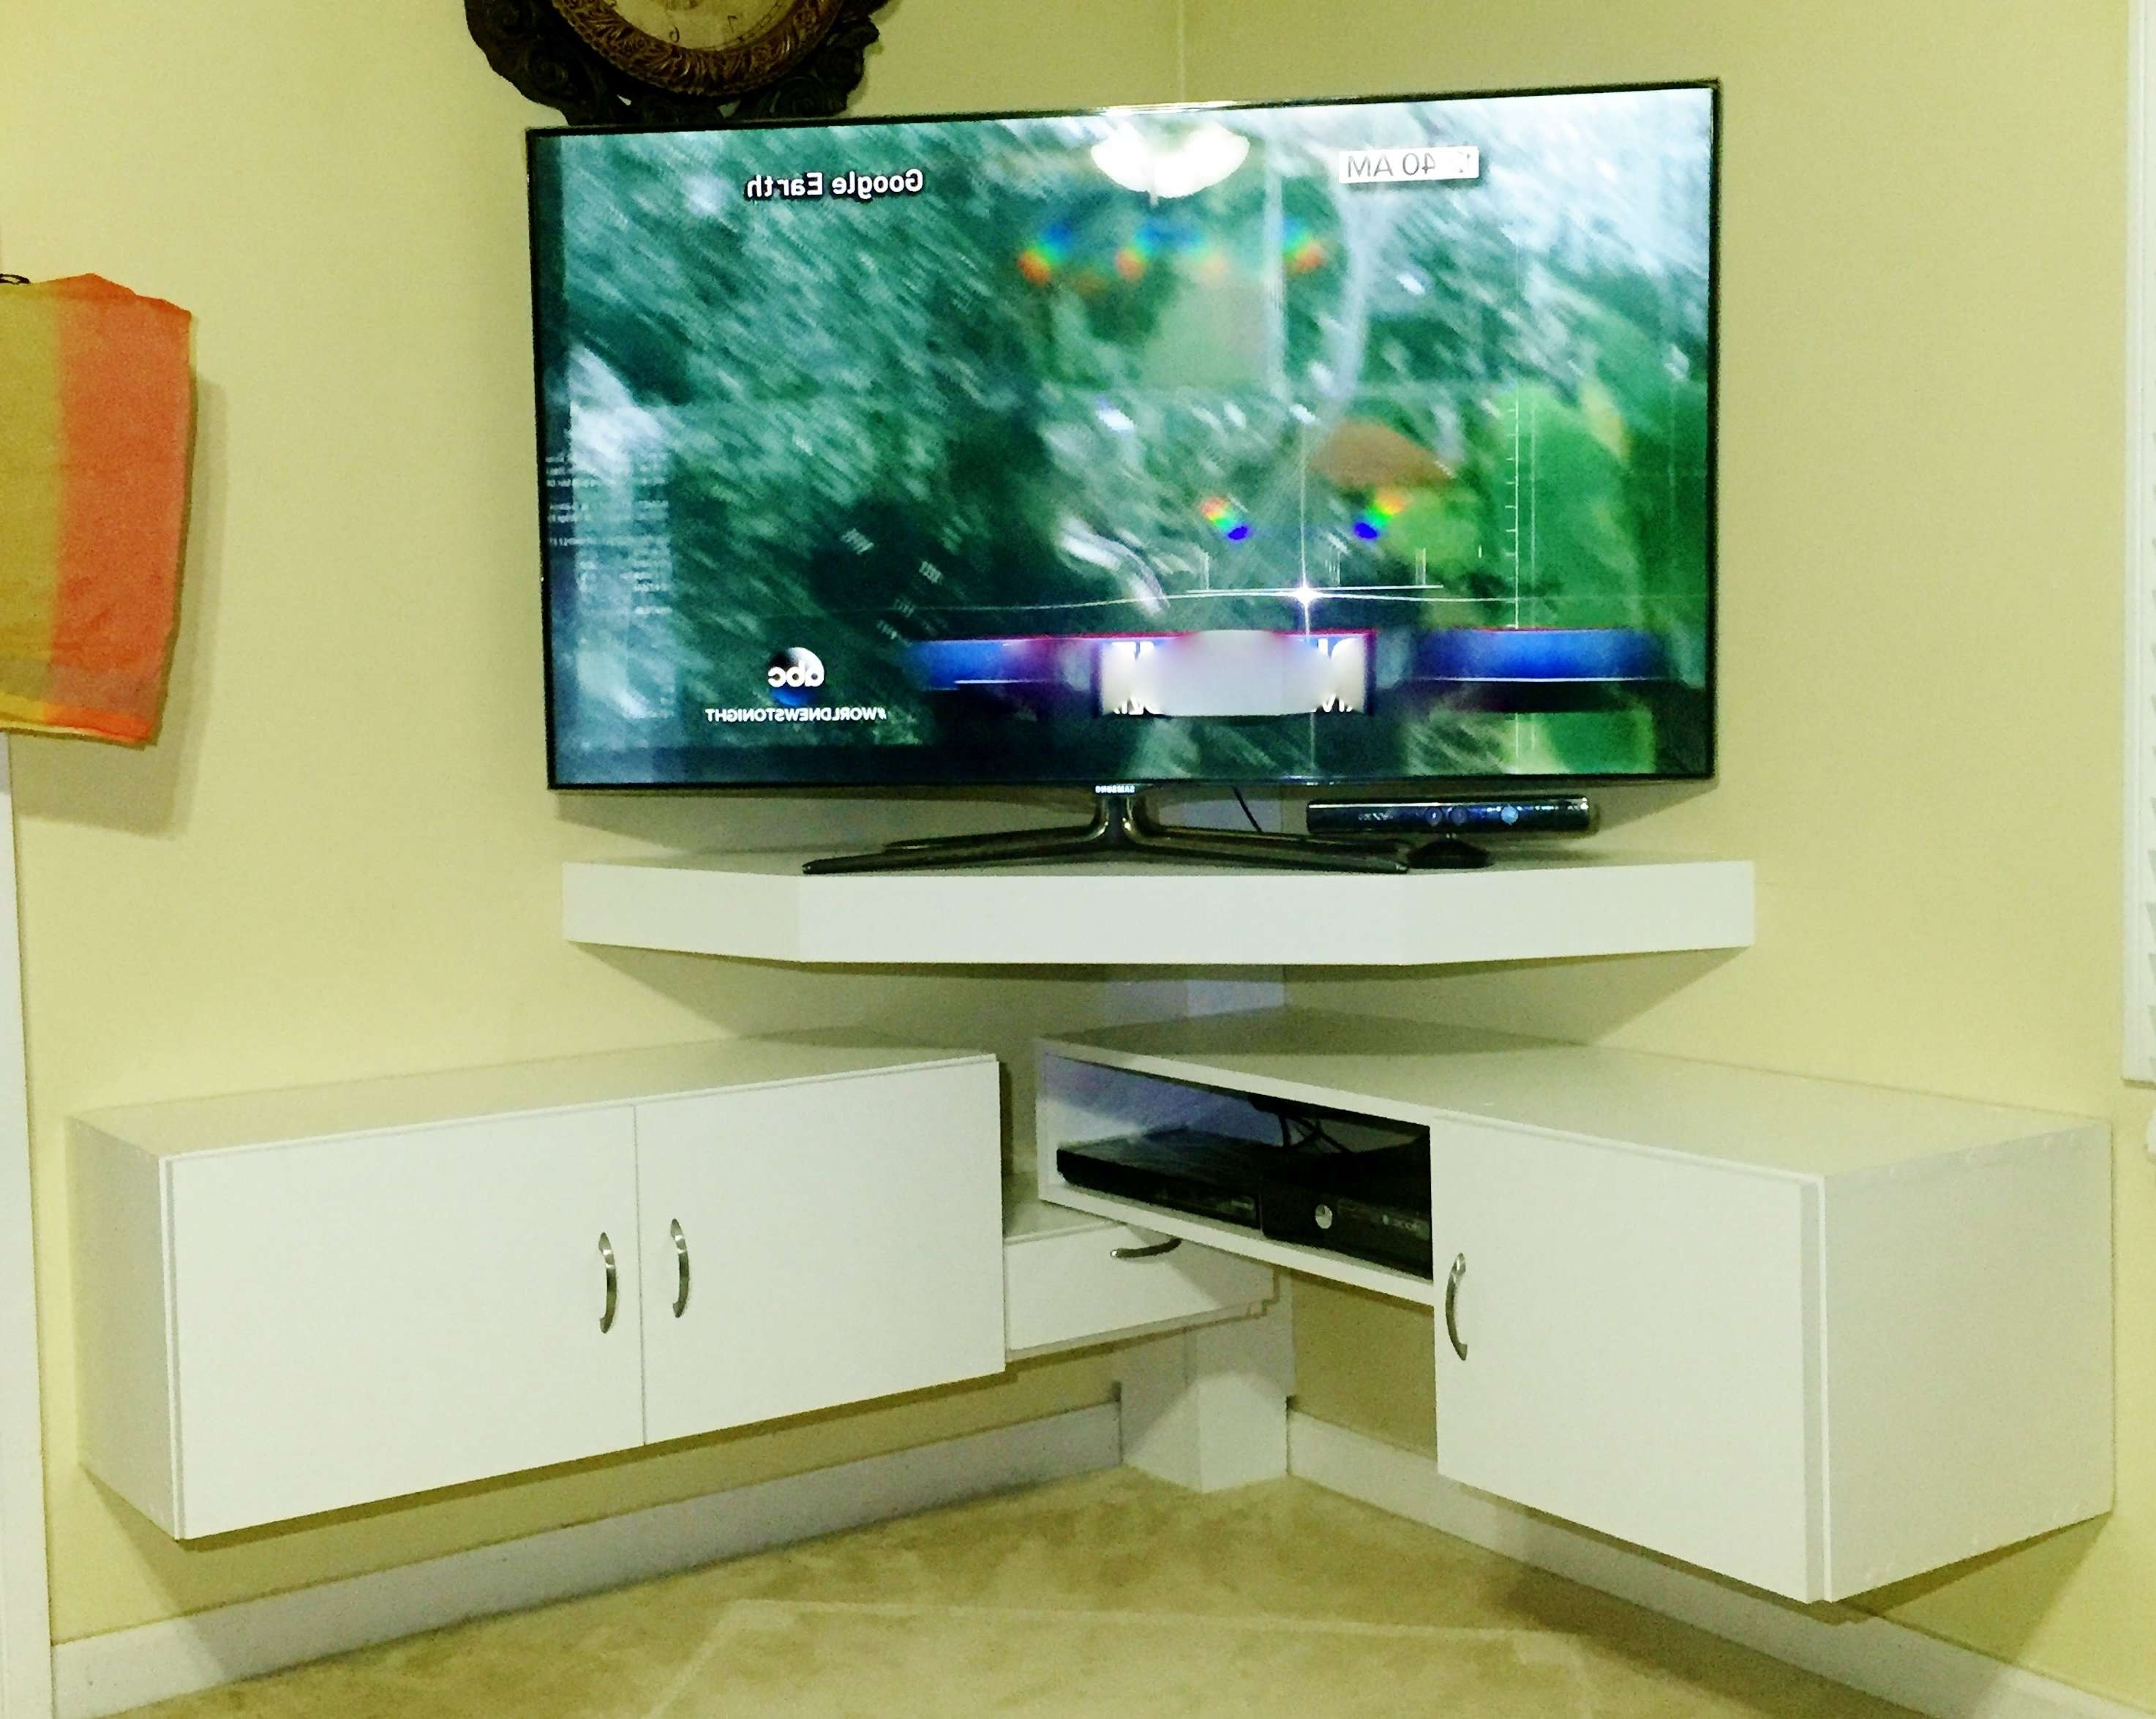 Corner Tv Stands 48 Inches Tags : 50 Unforgettable Corner Tv Stand Pertaining To Corner Tv Stands 40 Inch (View 16 of 20)